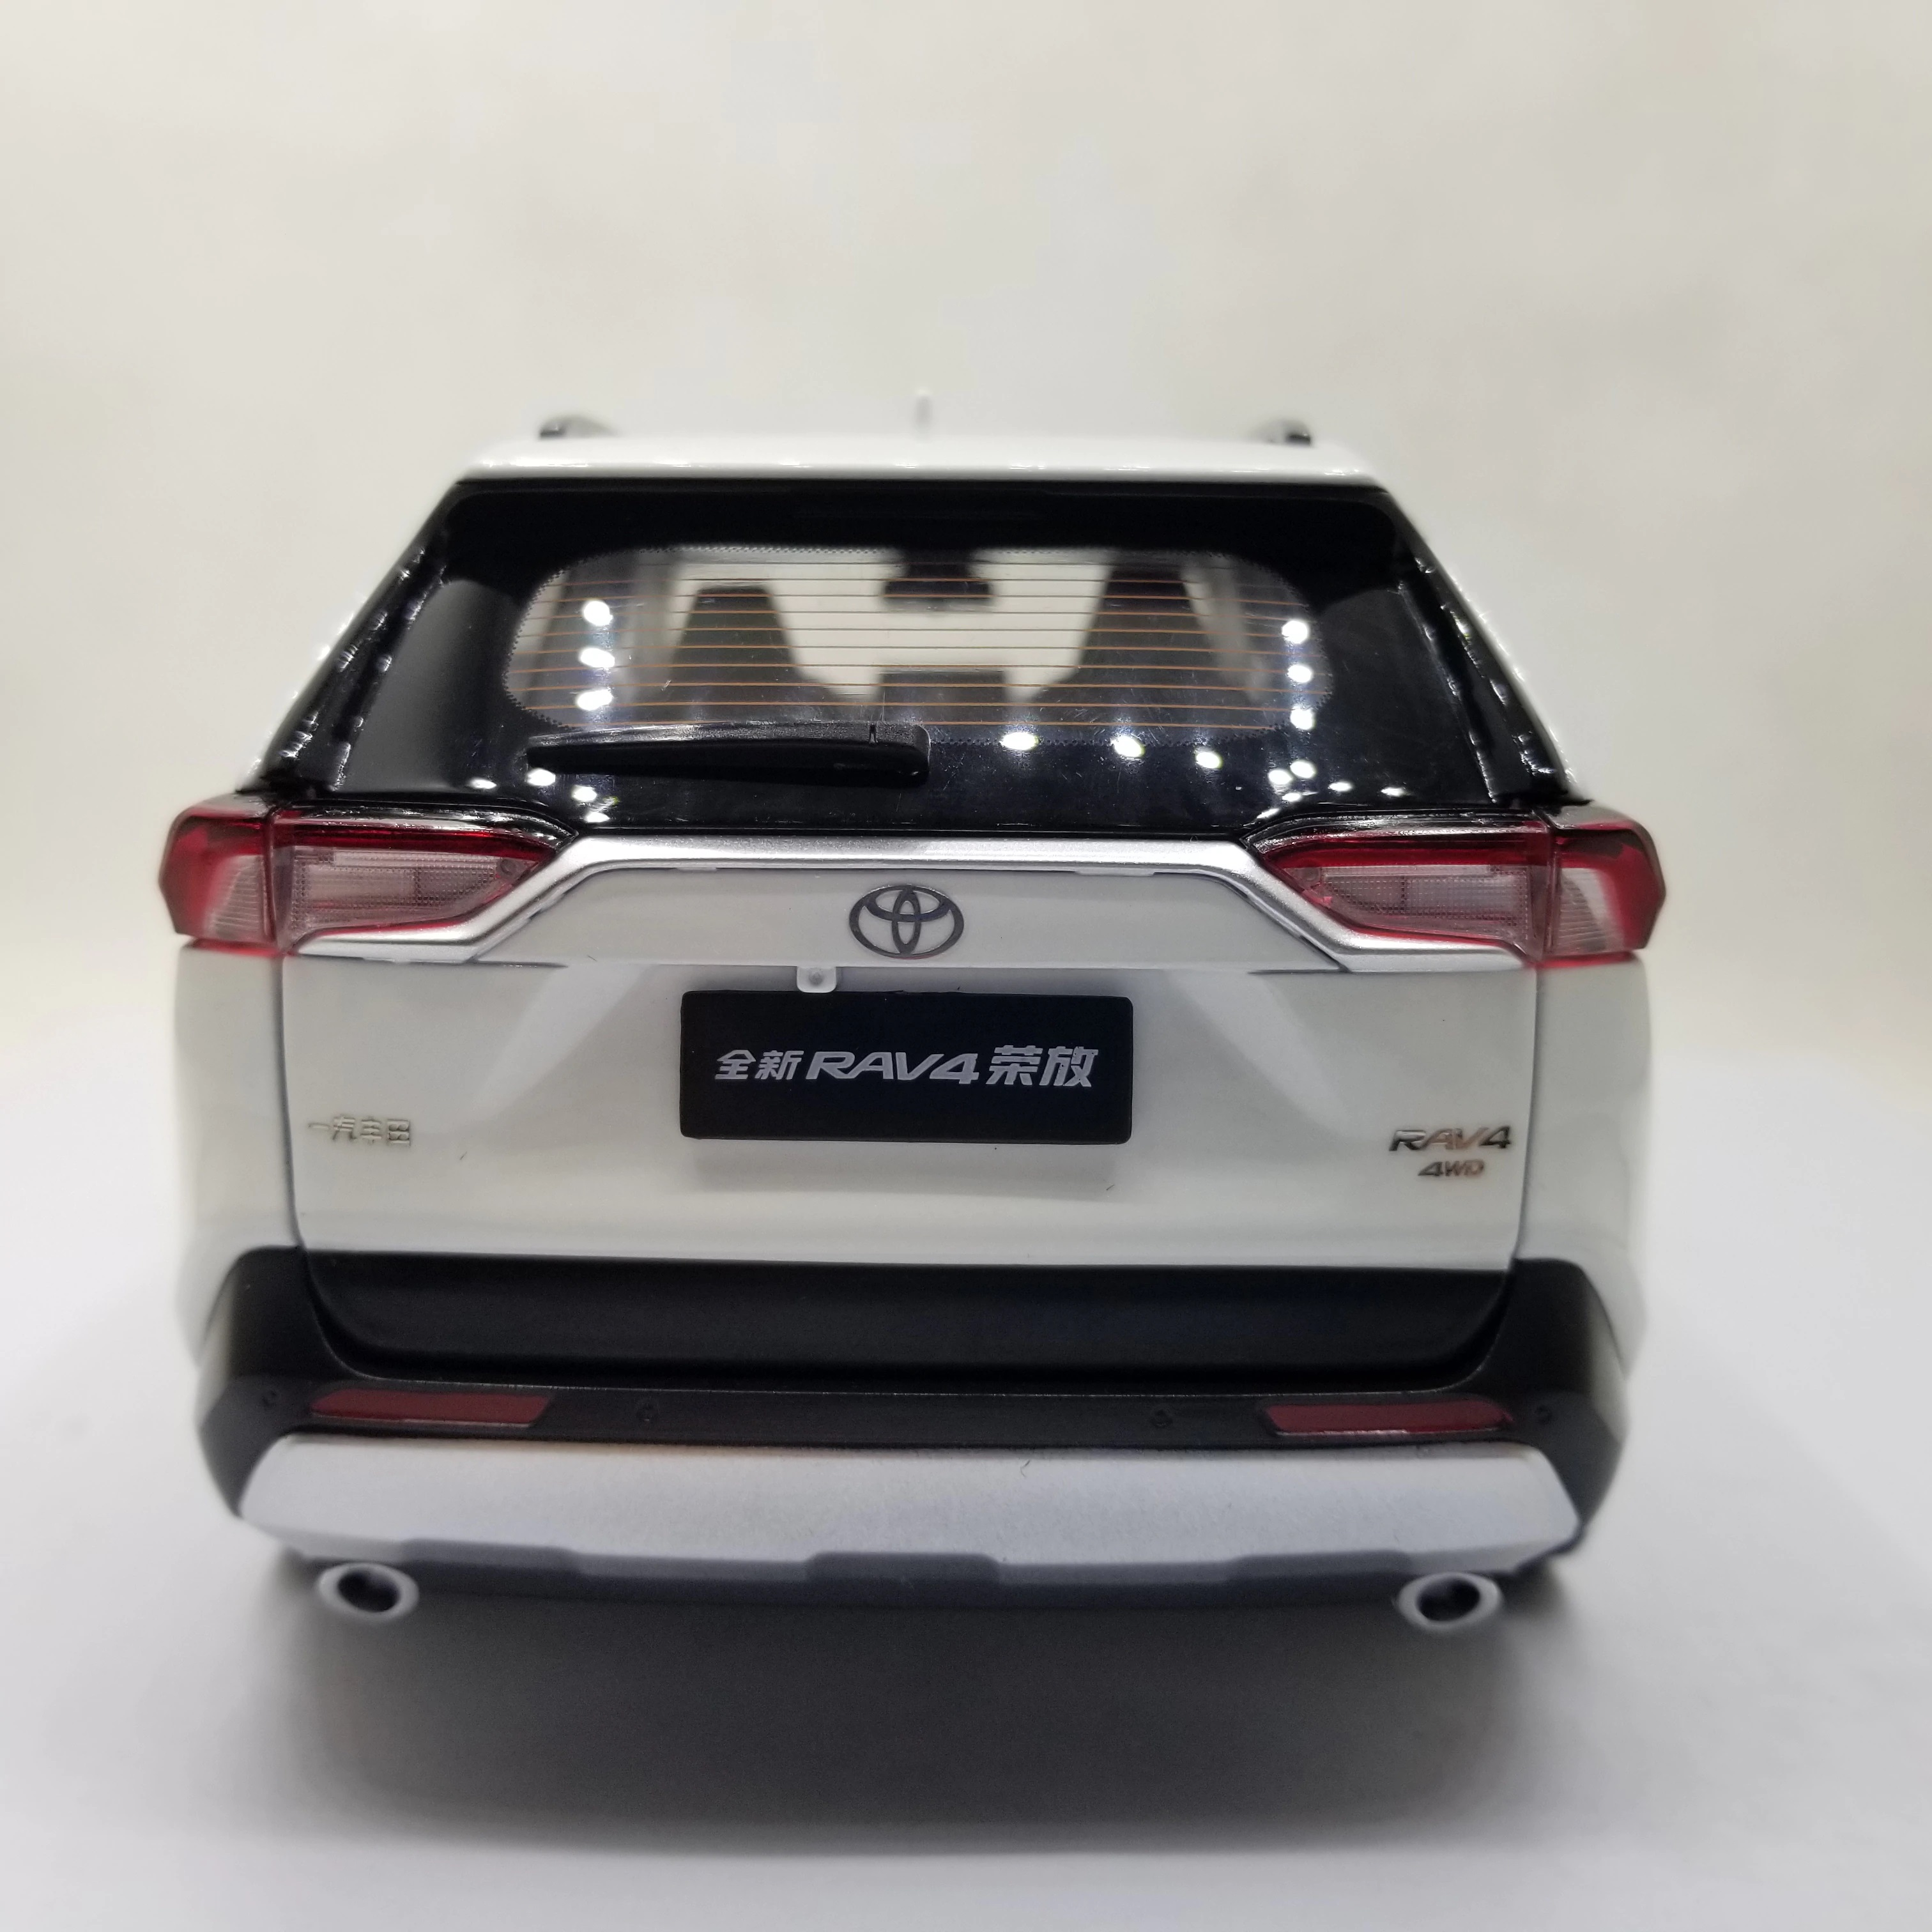 1:18 Diecast Model for Toyota RAV4 2020 White SUV Alloy Toy Car Miniature Collection Gifts RAV 4